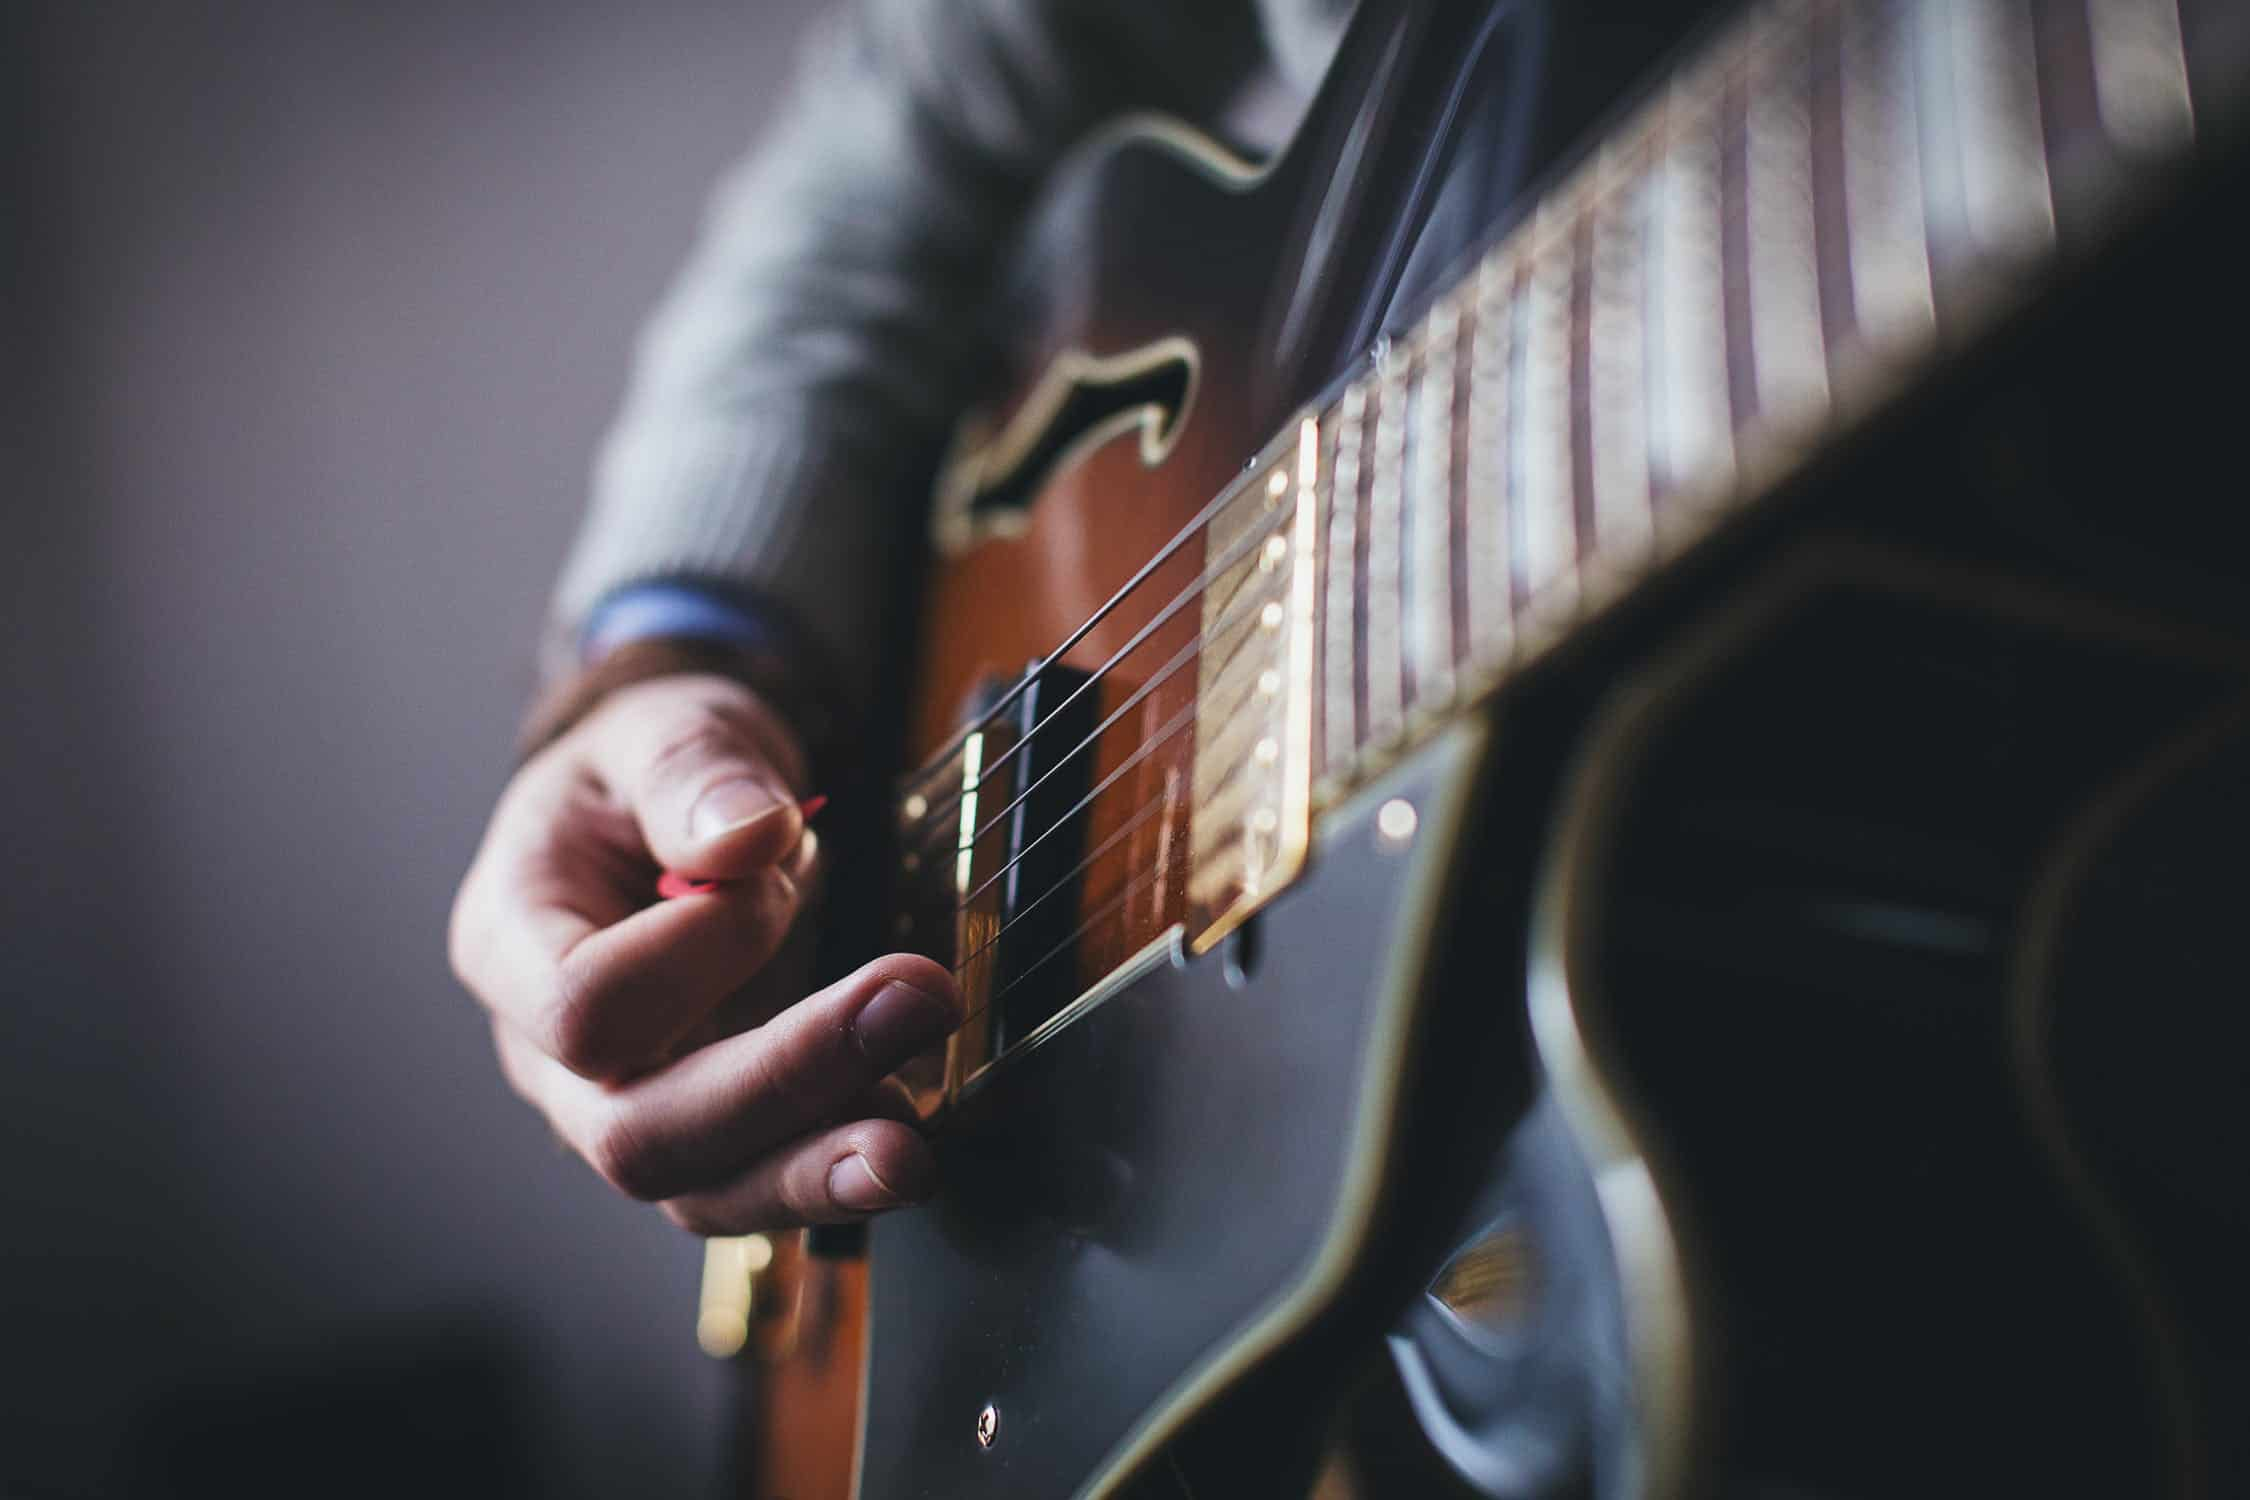 Guide to Basic Guitar Chords (with Pictures of Hands)